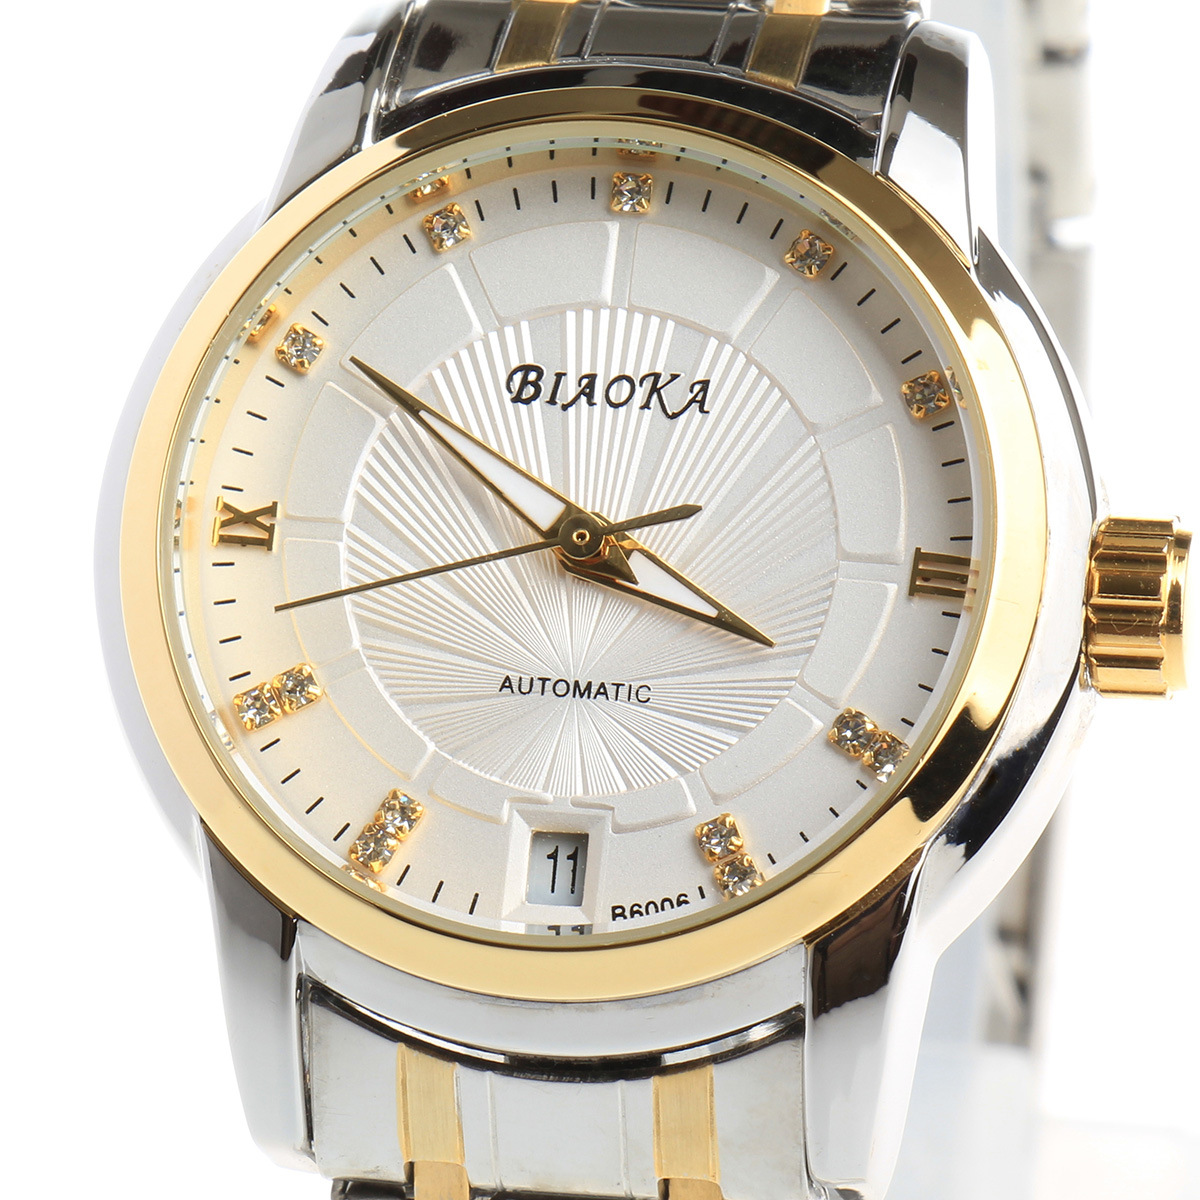 BIAOKA Brand New Fashion Gold Watch Stilig Stål Kvinnor Klocka Klassisk Mekanisk Klänning Skelett Vattentät Watch Reloj Mujer